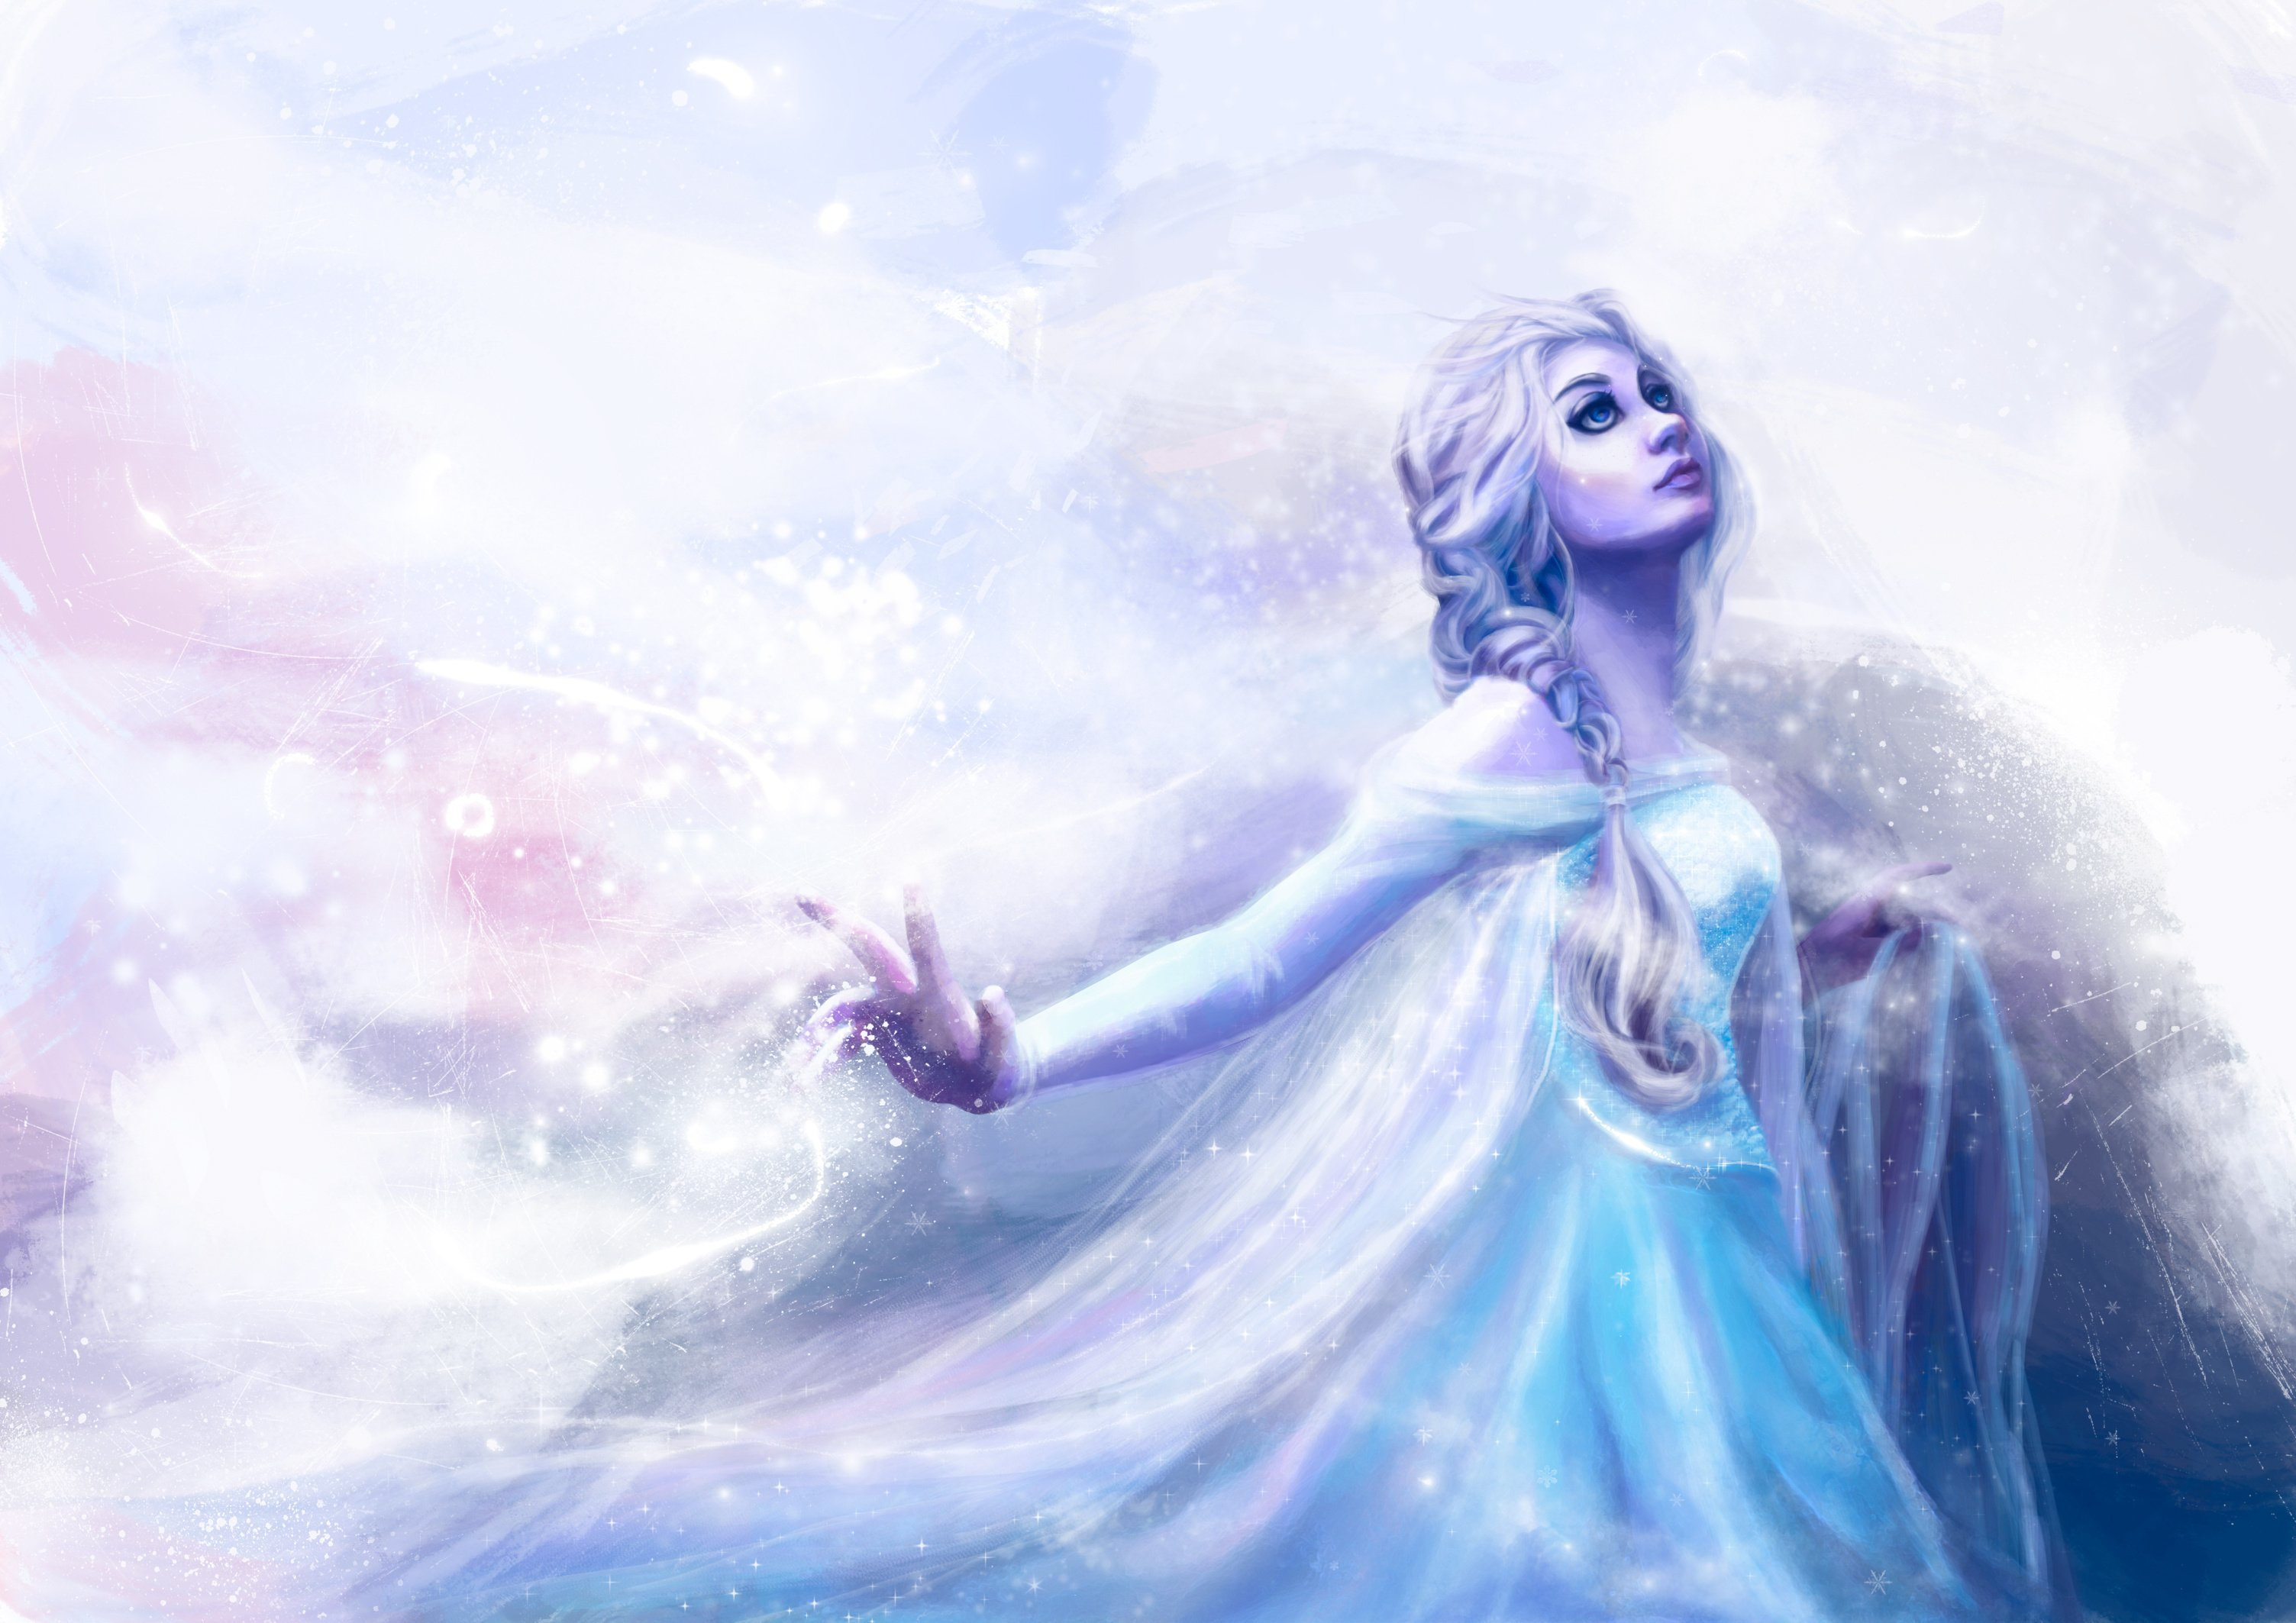 disney frozen snow queen elsa fantasy girl artwork mood